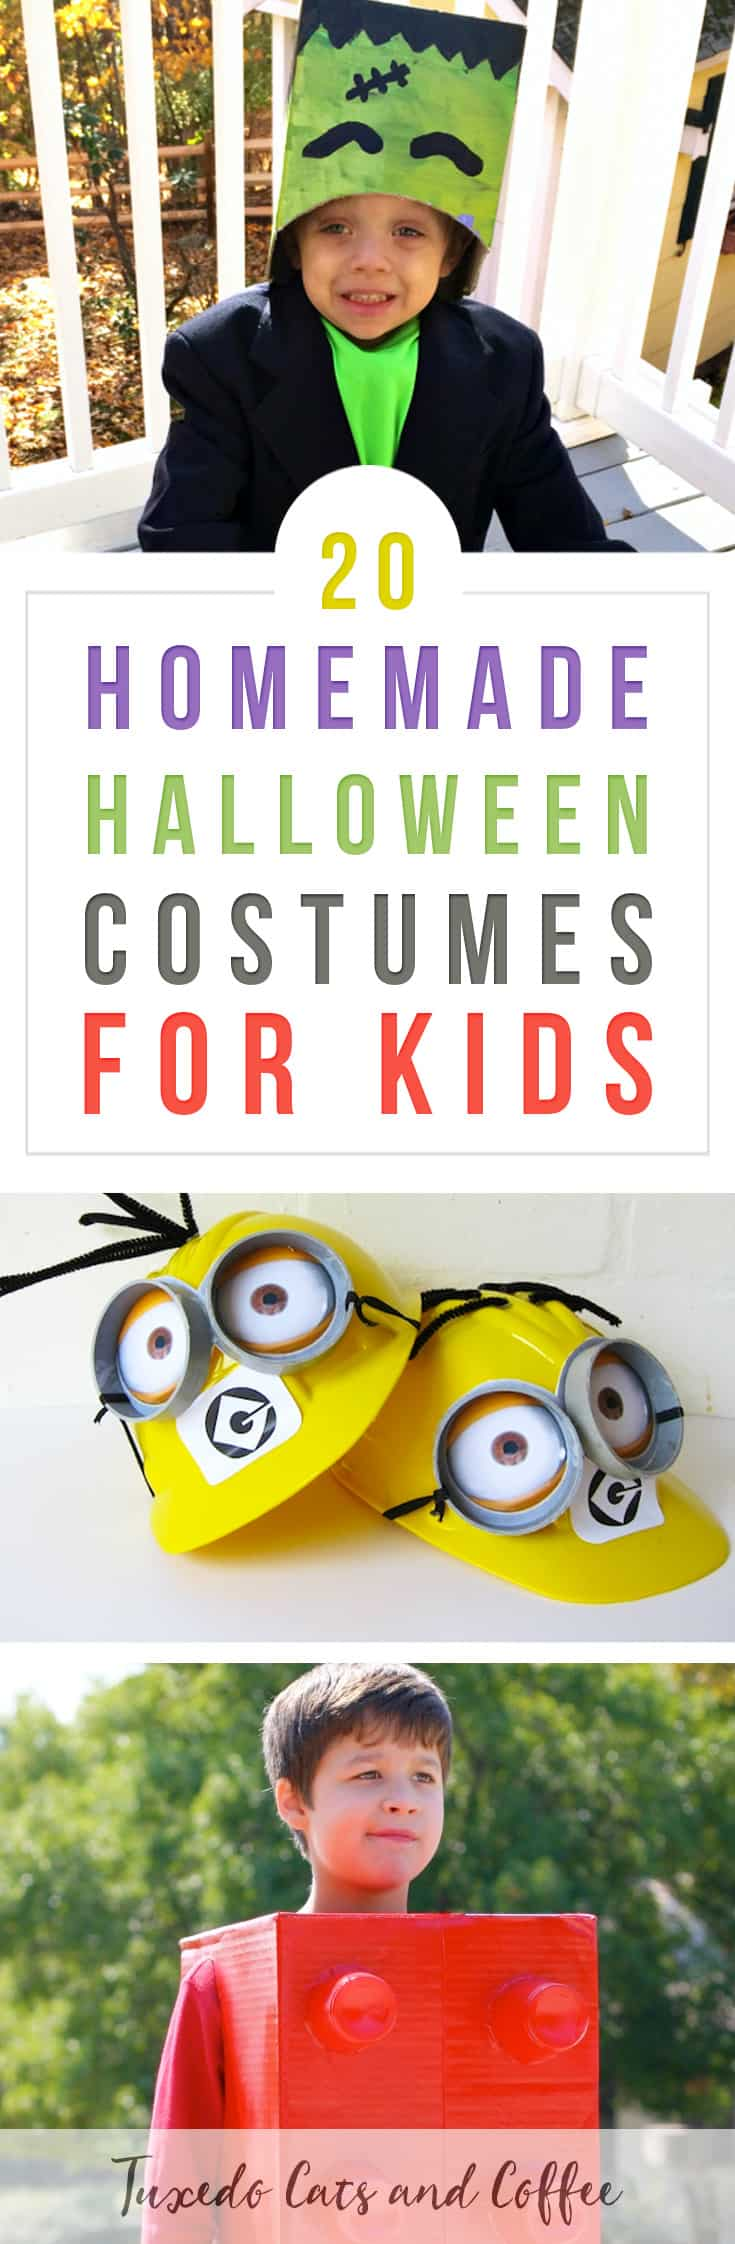 If you're on a budget, making your own homemade Halloween costumes is a great way to save money!  You can create a DIY Halloween costume for just about any idea - witches, Frankenstein, minions, Disney characters, and so much more.  Here are 20+ homemade Halloween costumes for kids.